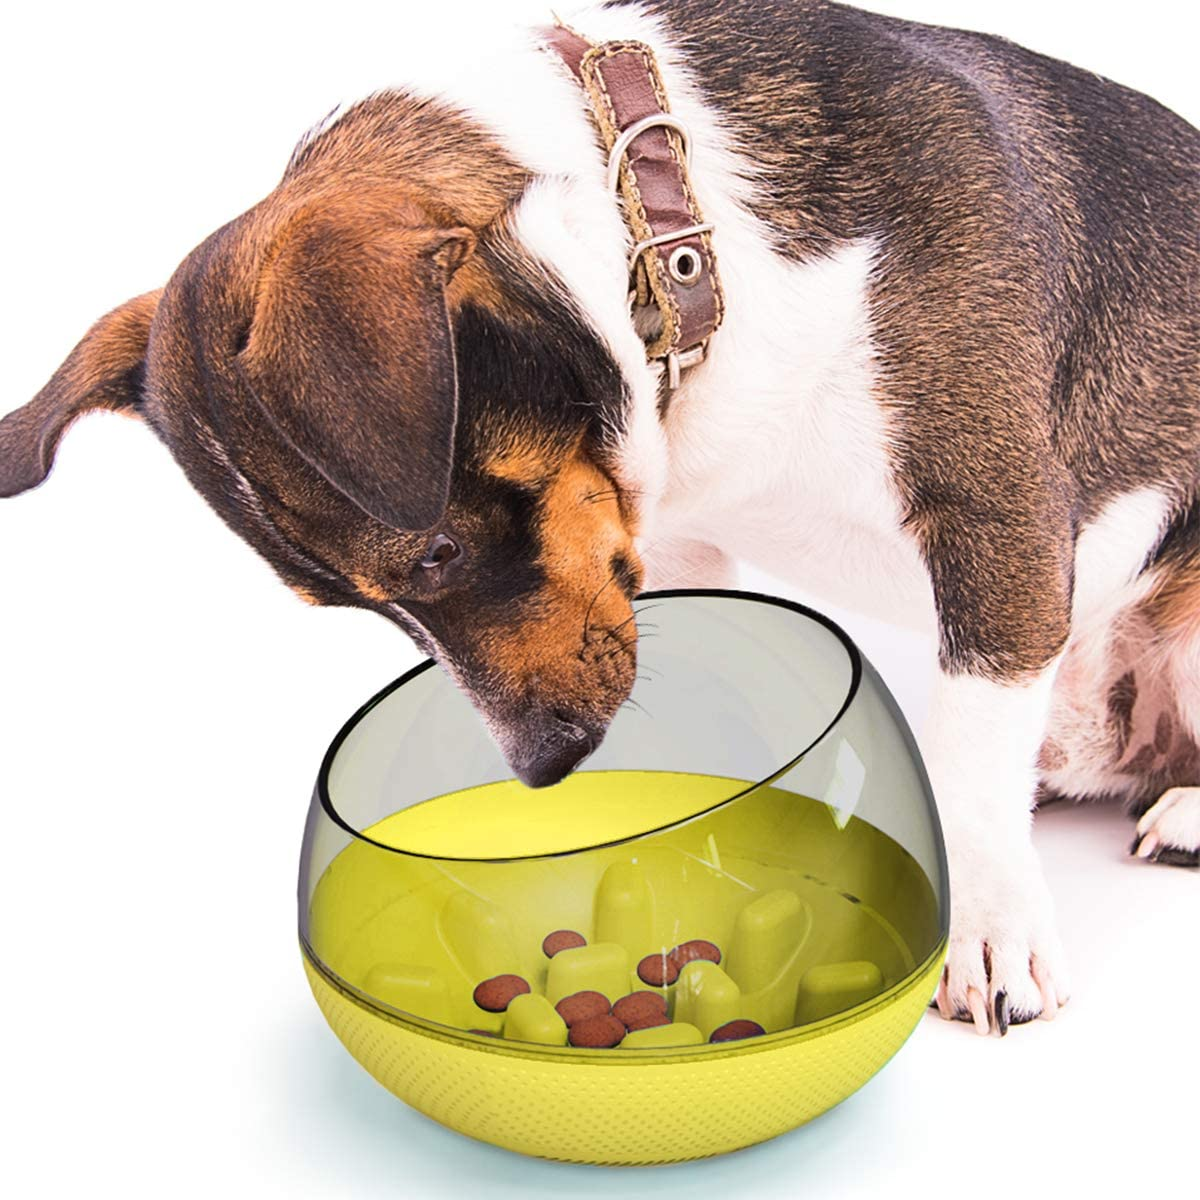 Slow Feeder for Big and Small Dogs and Cats   Eco-Friendly No Choking for Wet Food and Dry Food   Slo Bowl for Healthy Pet